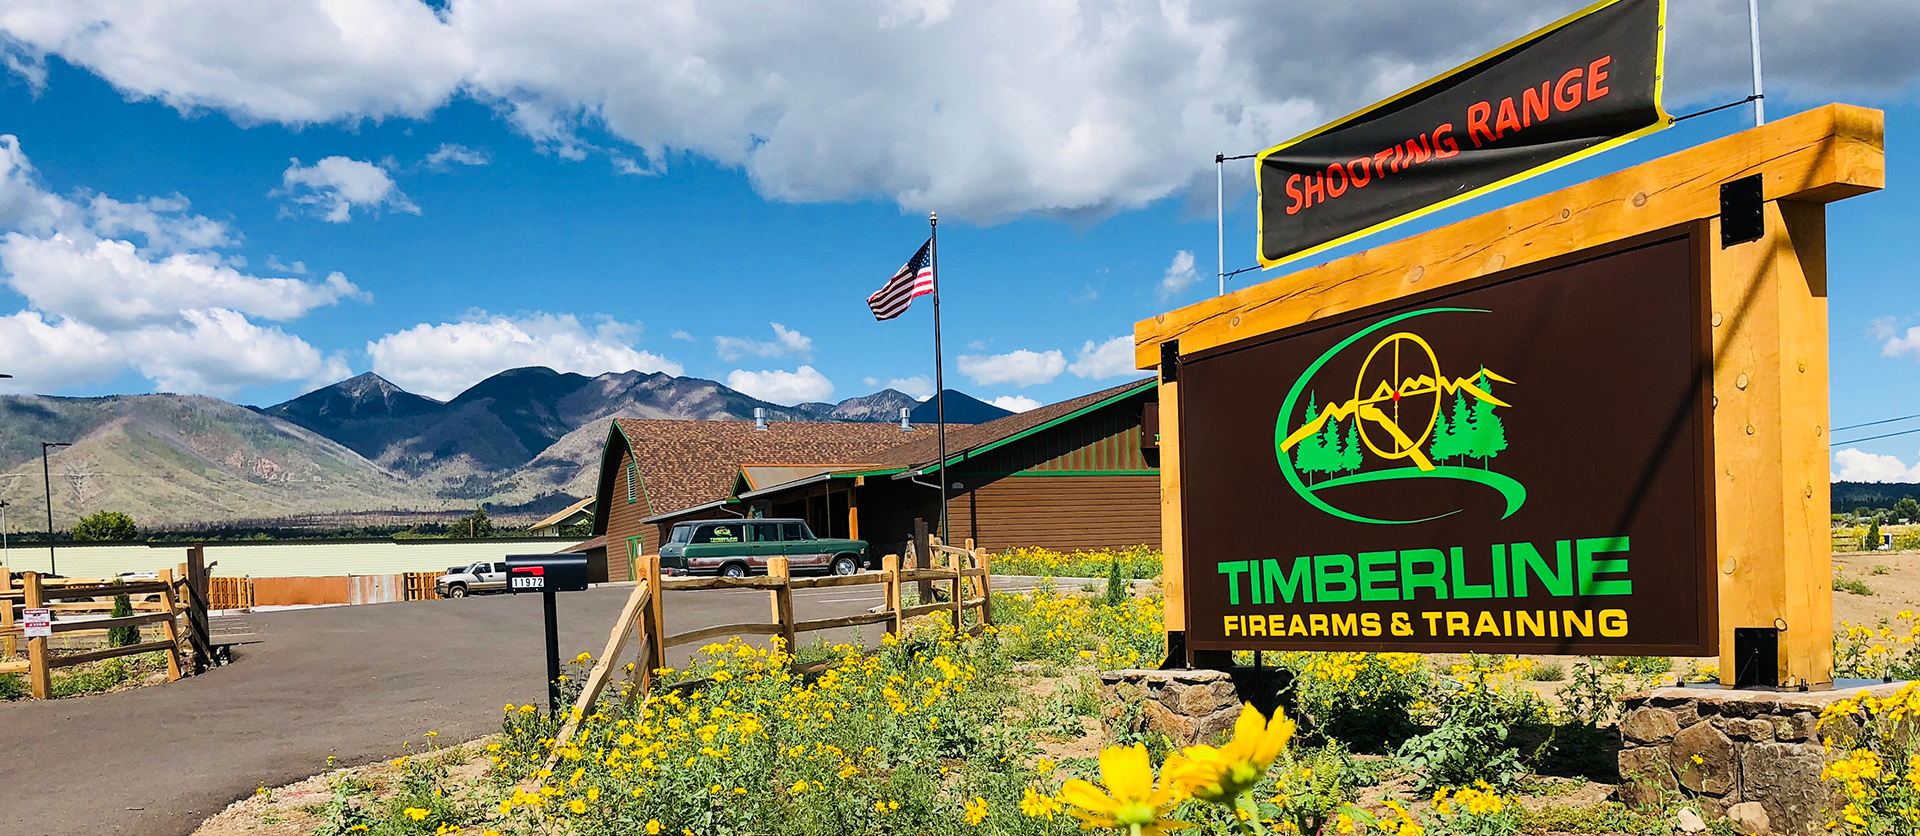 Timberline Firearms shooting range from the outside